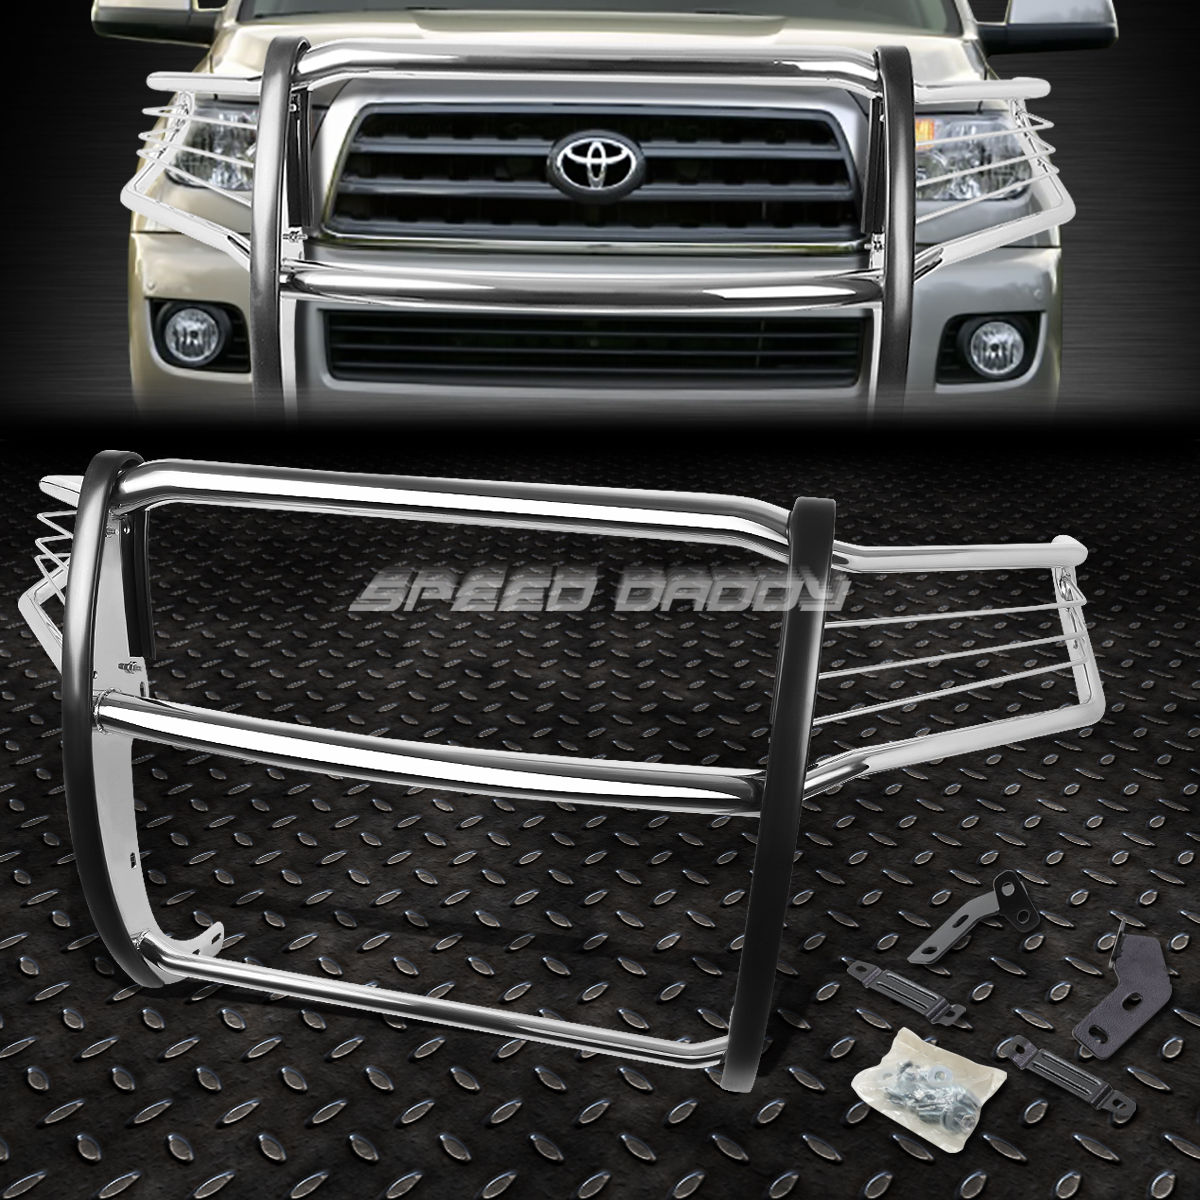 グリル CHROME STAINLESS STEELフロントバンパーグリルガード08-16 TOYOTA SEQUOIA SUV CHROME STAINLESS STEEL FRONT BUMPER GRILL GUARD FOR 08-16 TOYOTA SEQUOIA SUV